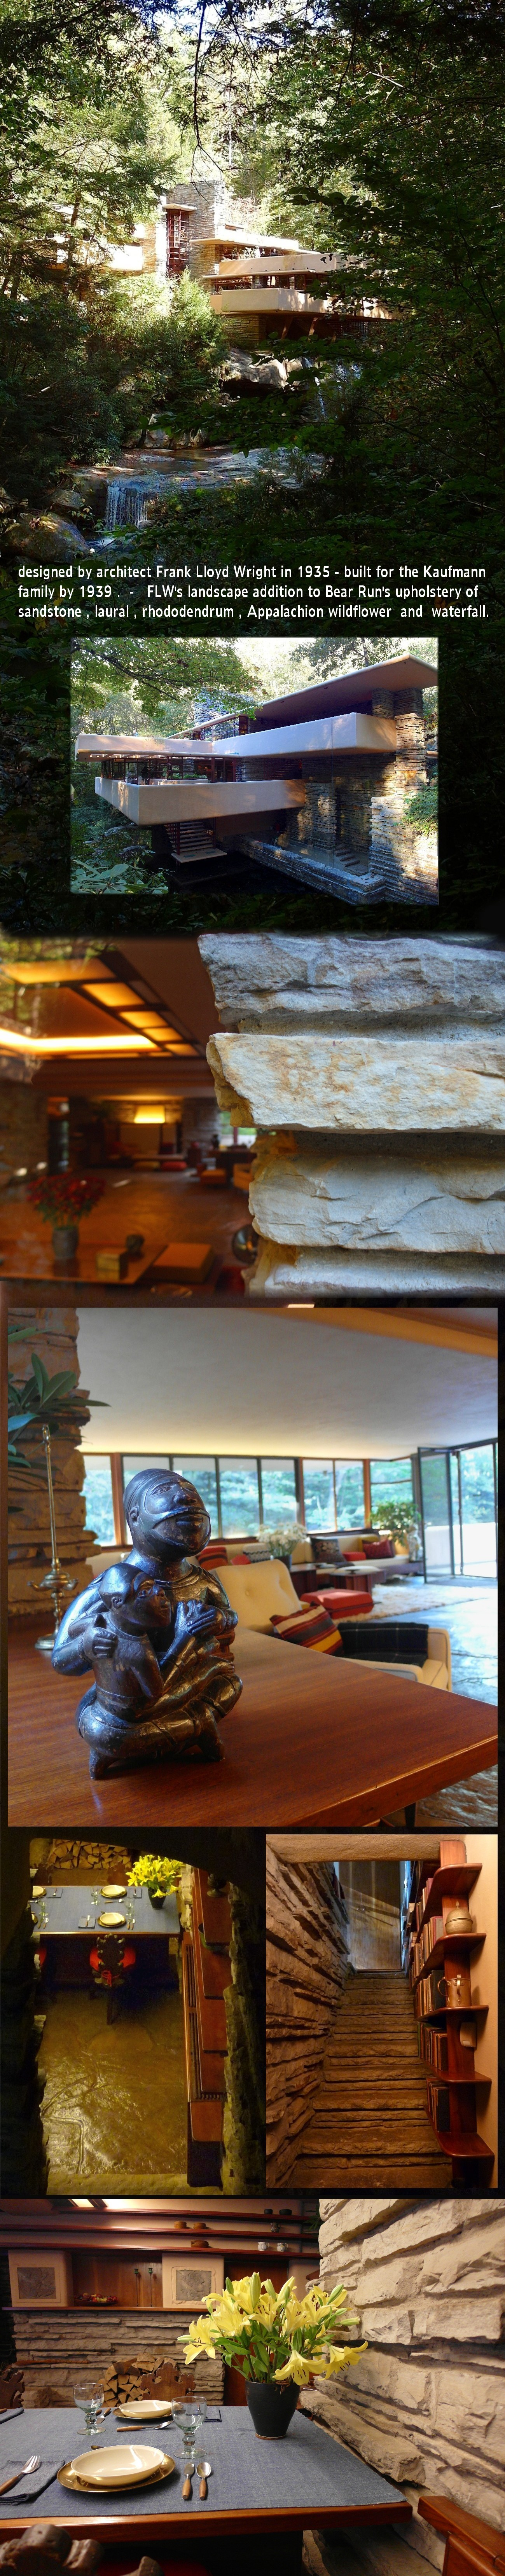 Falling Water House Usa The Bear S Run Flw S Fallingwater Pa Usa Tiki Obscure